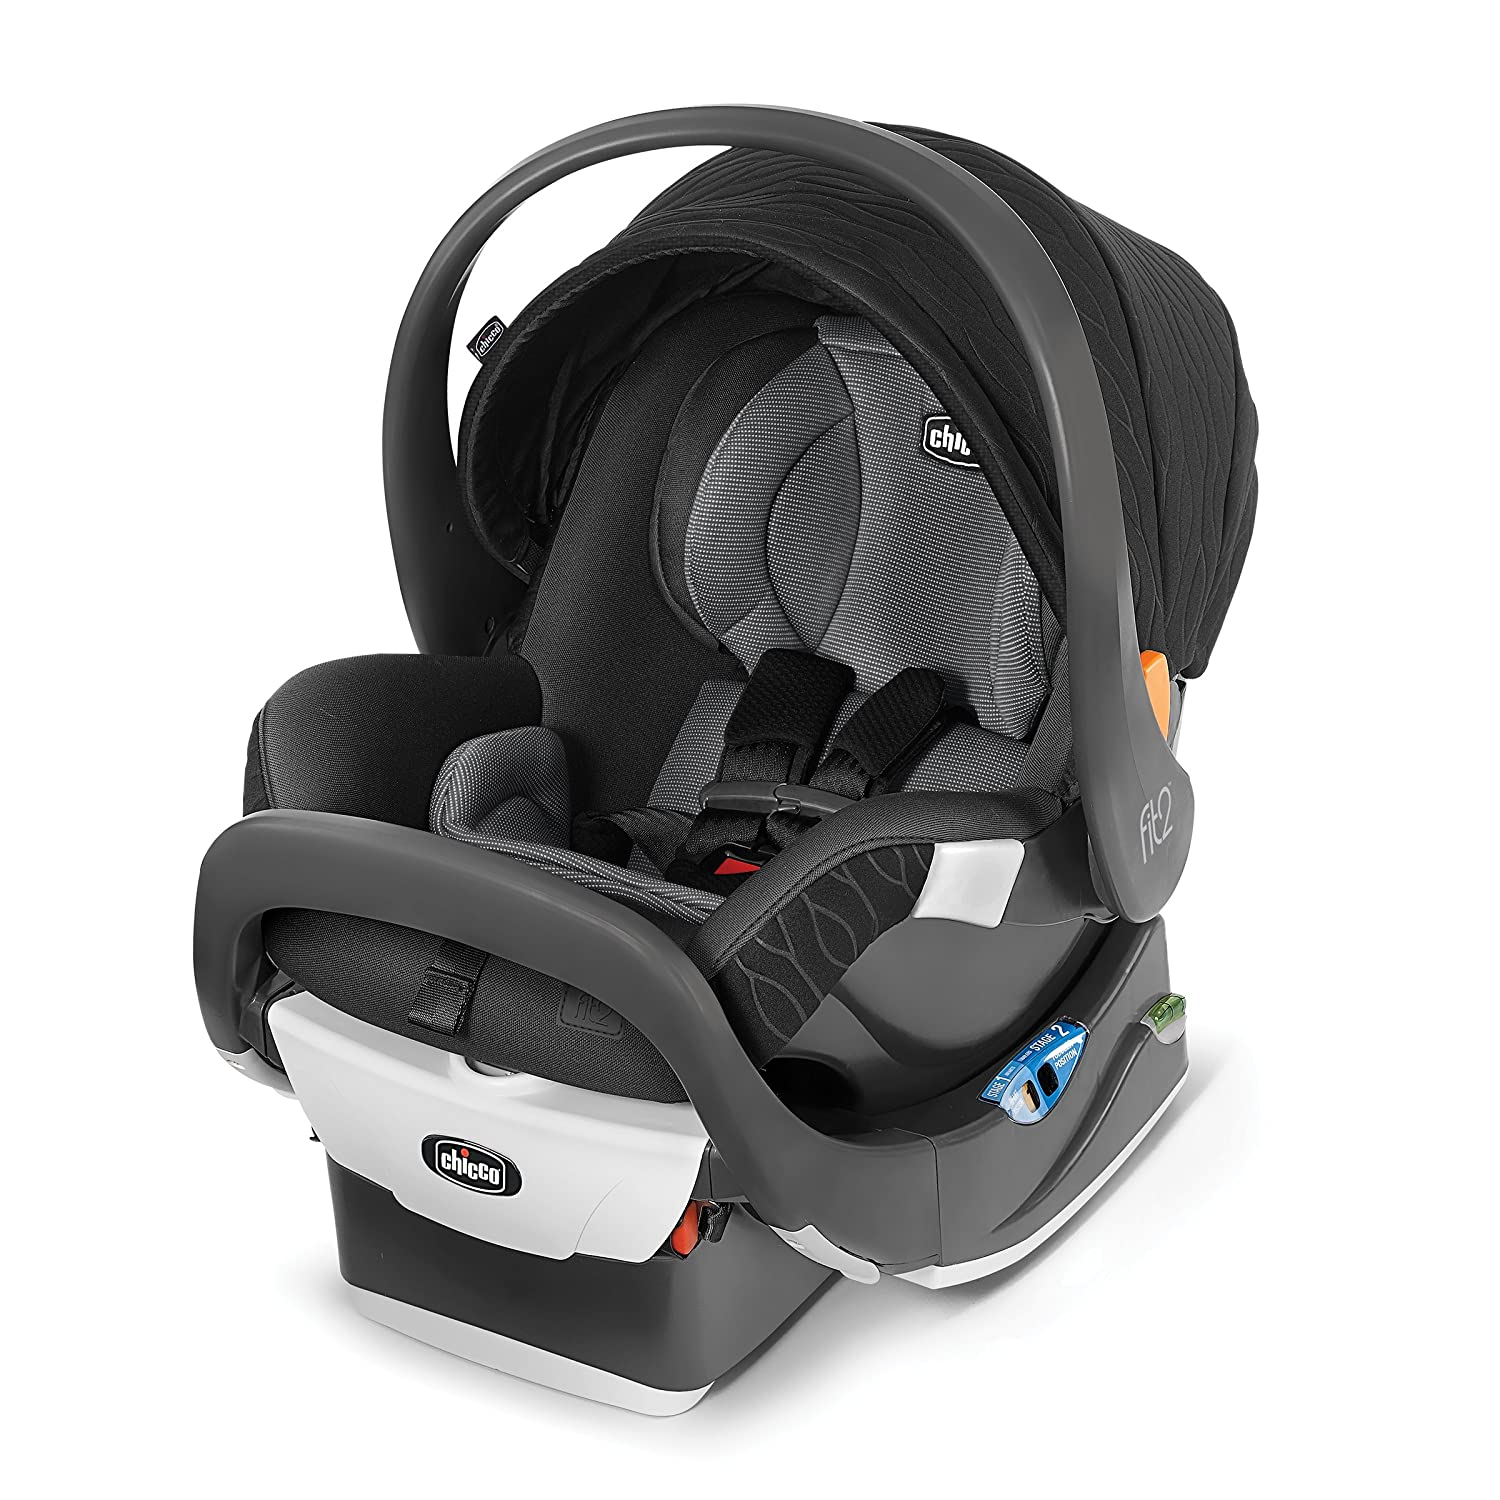 Chicco Fit2 Infant Toddler Car Seat, Legato